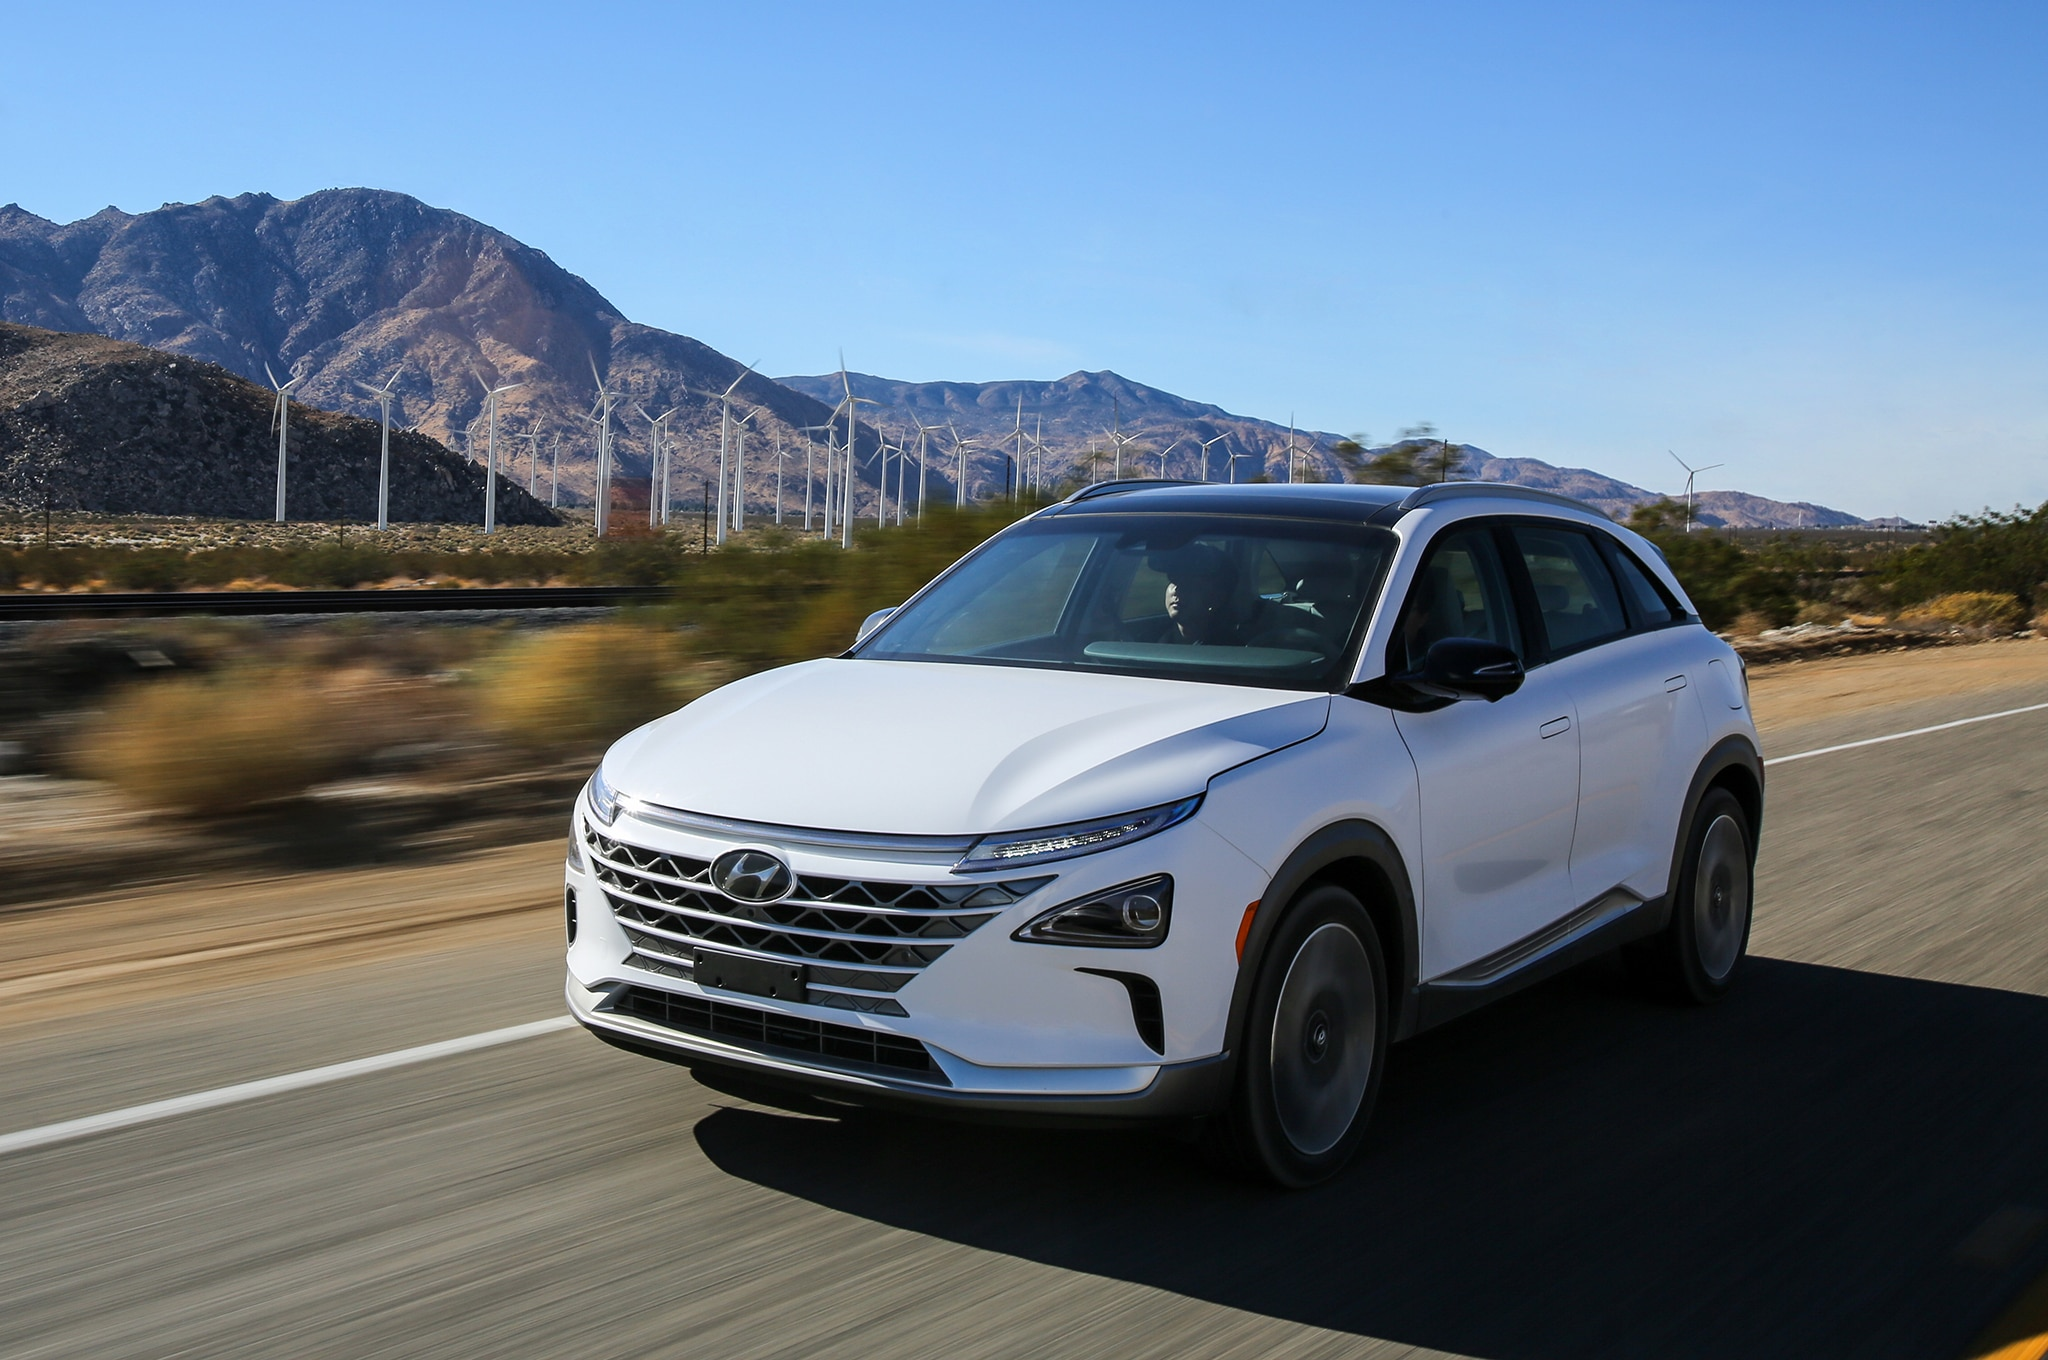 2019 Hyundai Nexo Front Three Quarter In Motion 21